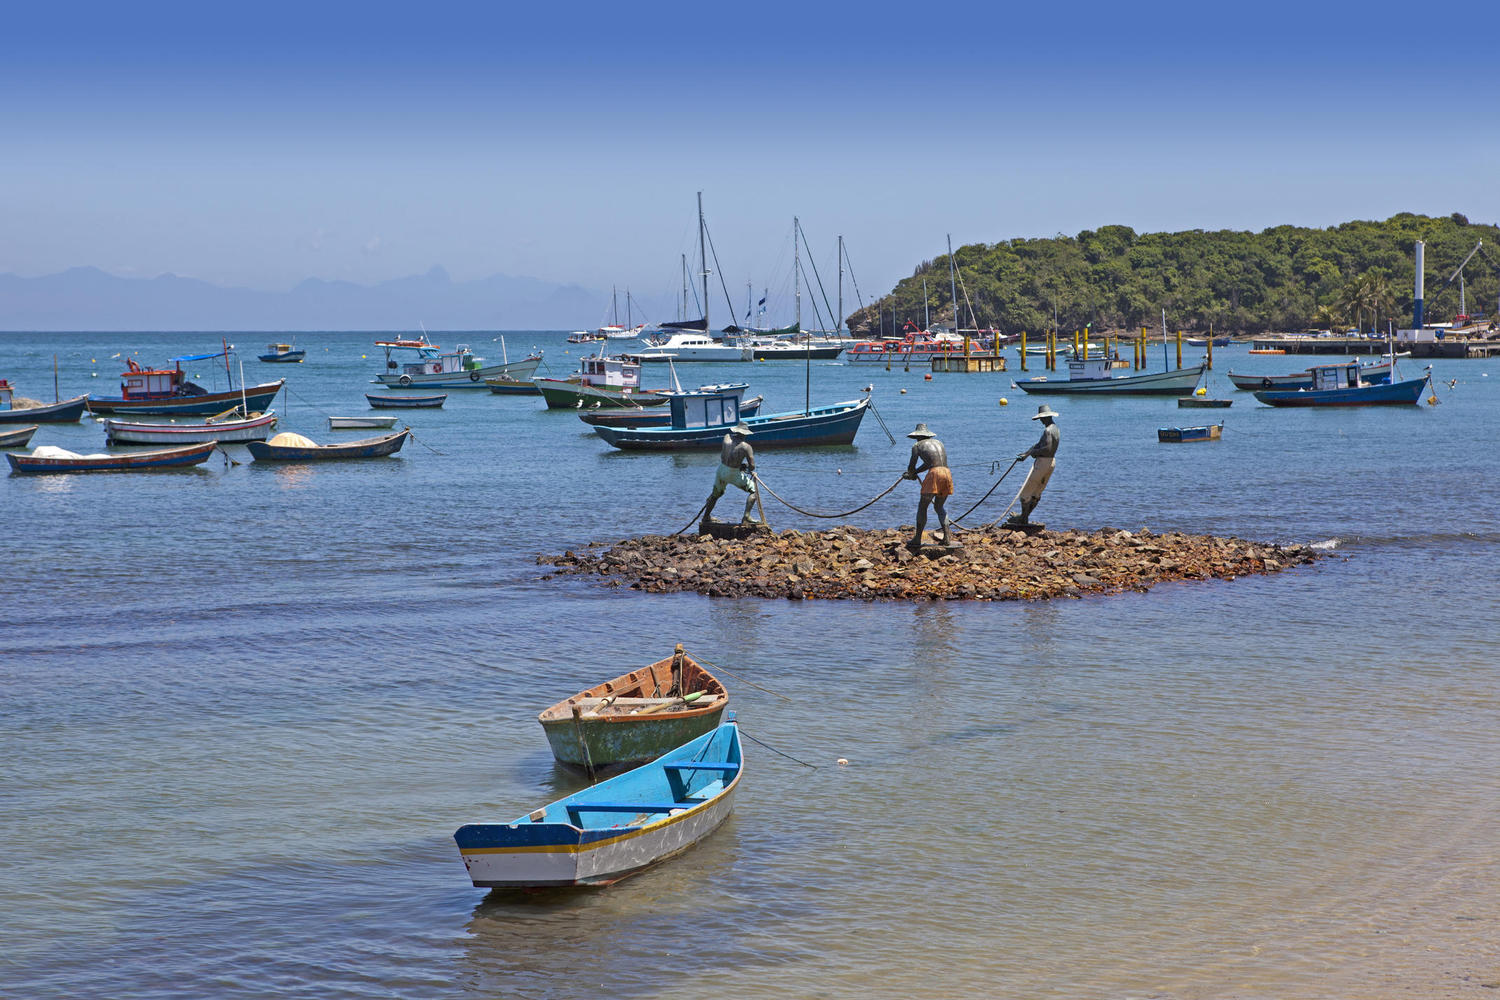 Statue of fishermen in Buzios, Brazil